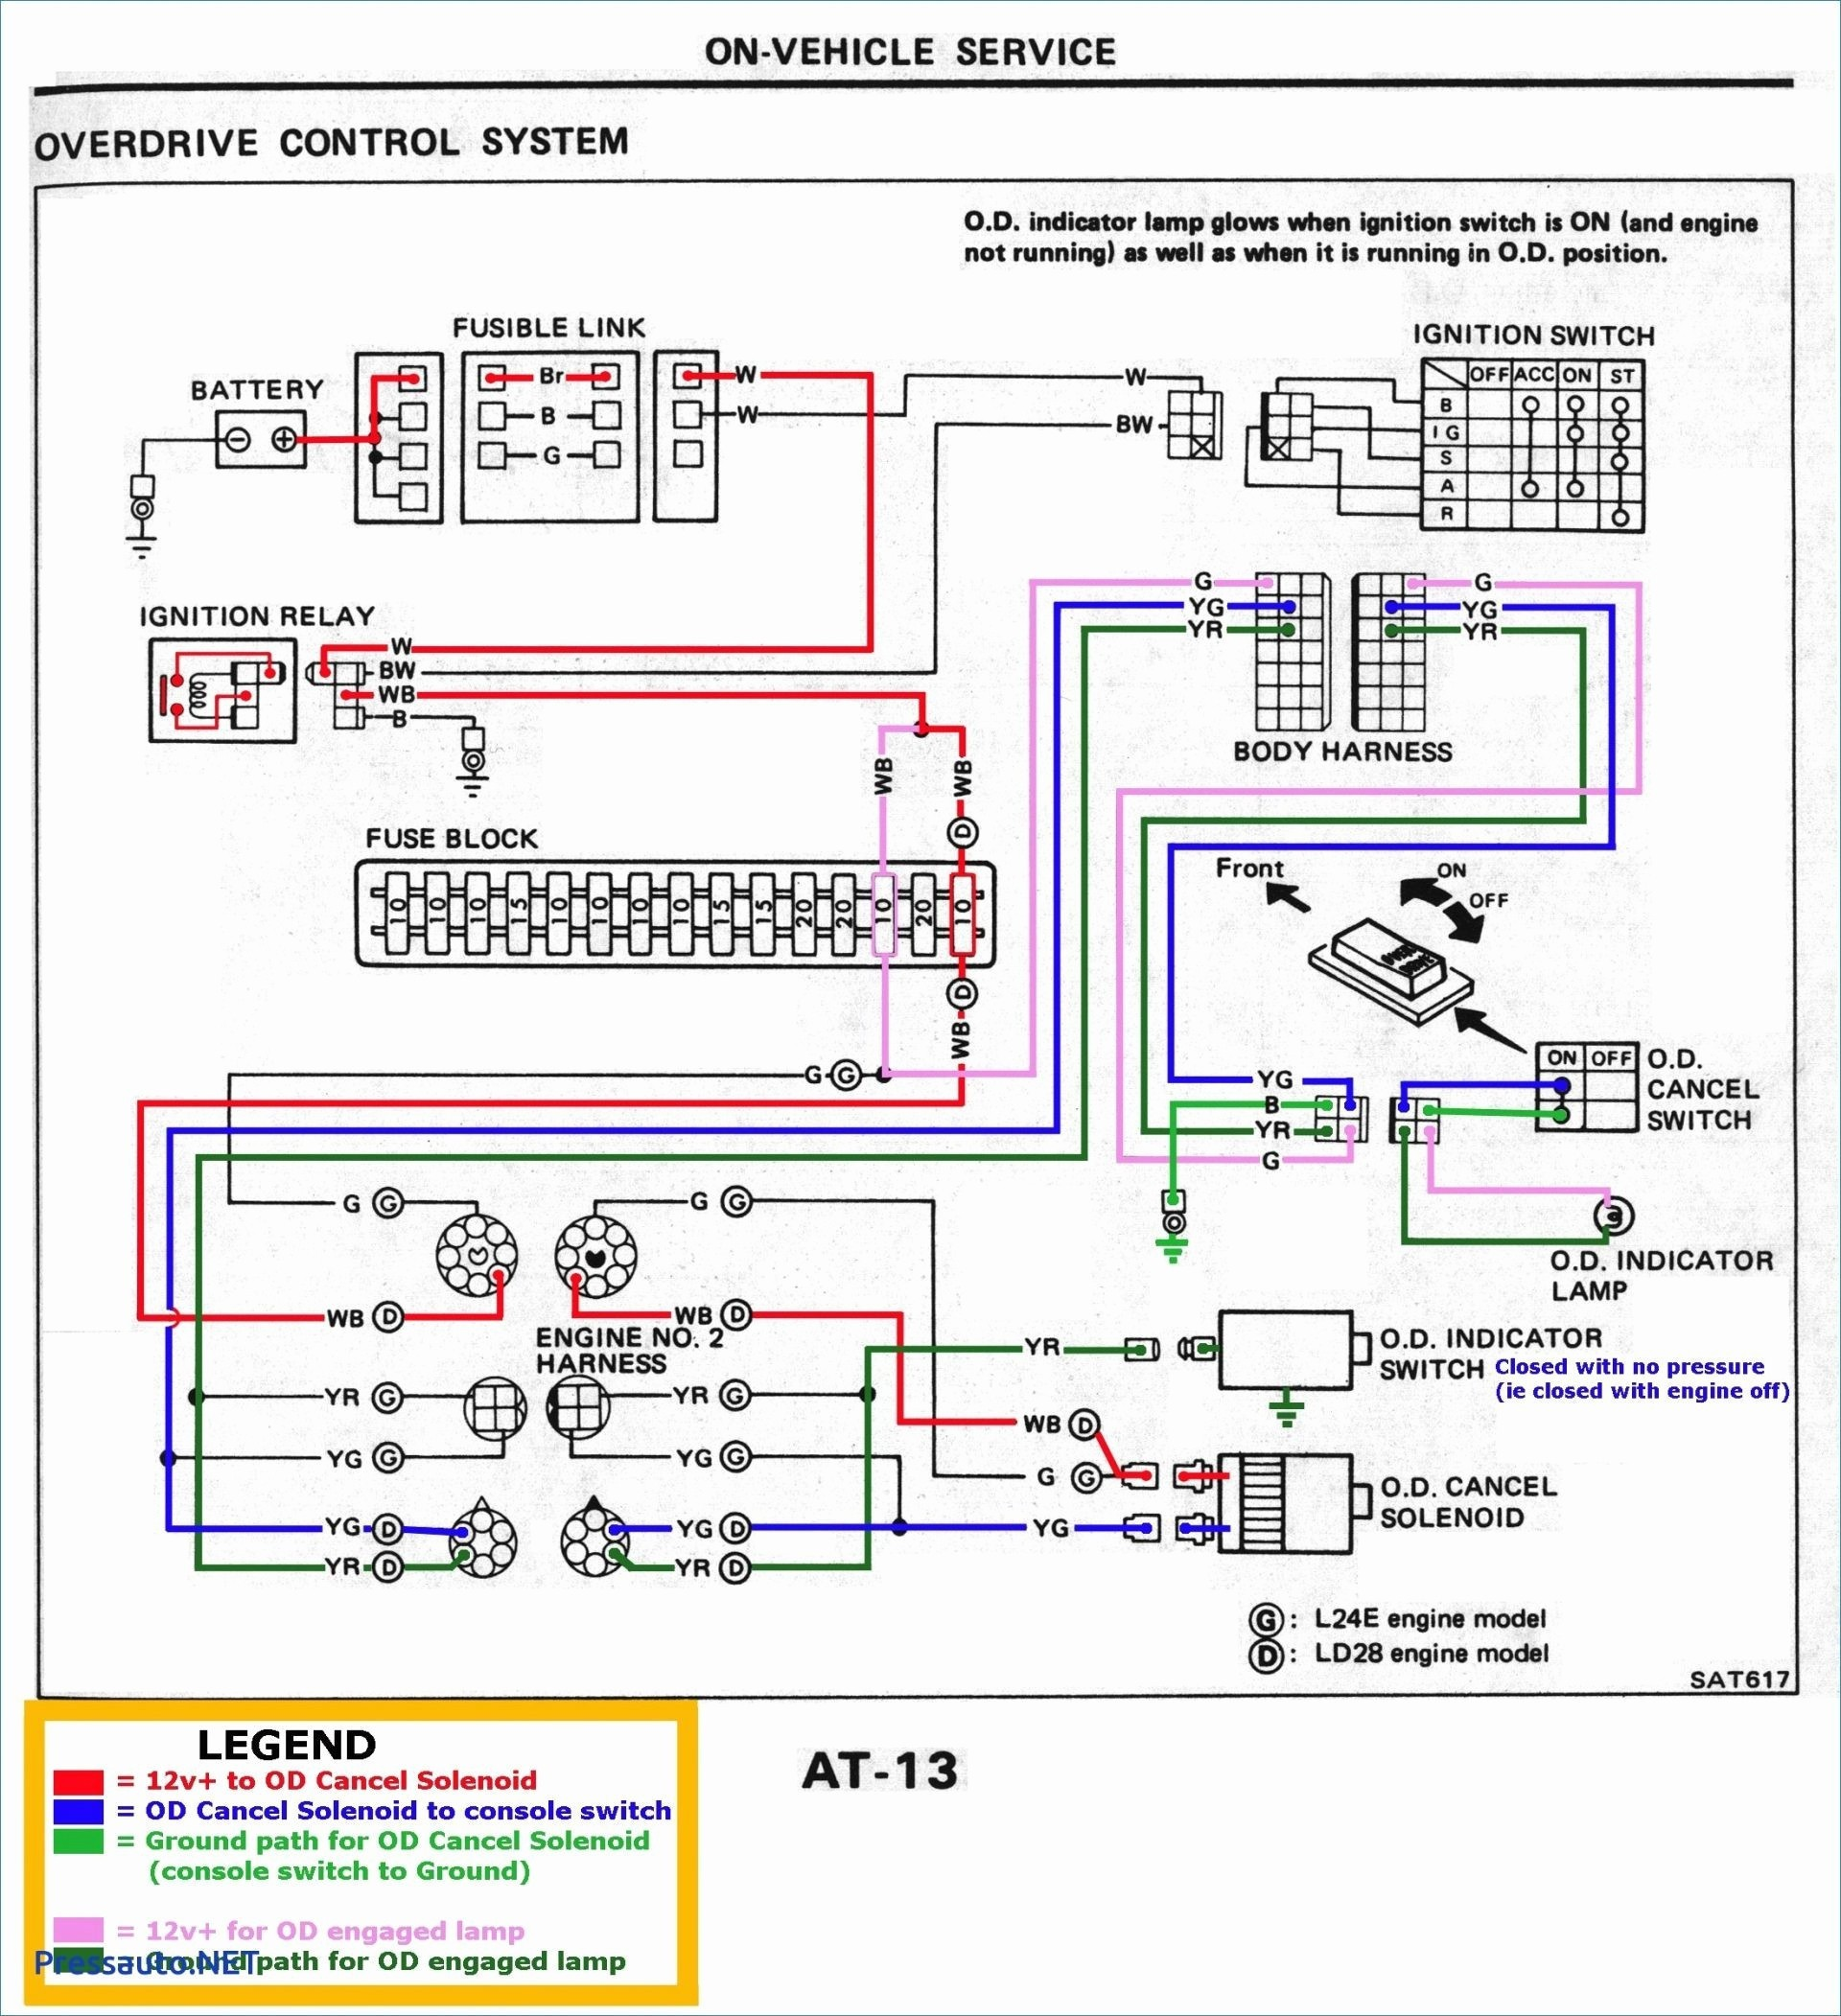 2006 Vw Jetta Engine Diagram S40 Library Wiring 06 Fuse 1 10 2019 Data Diagrams Of